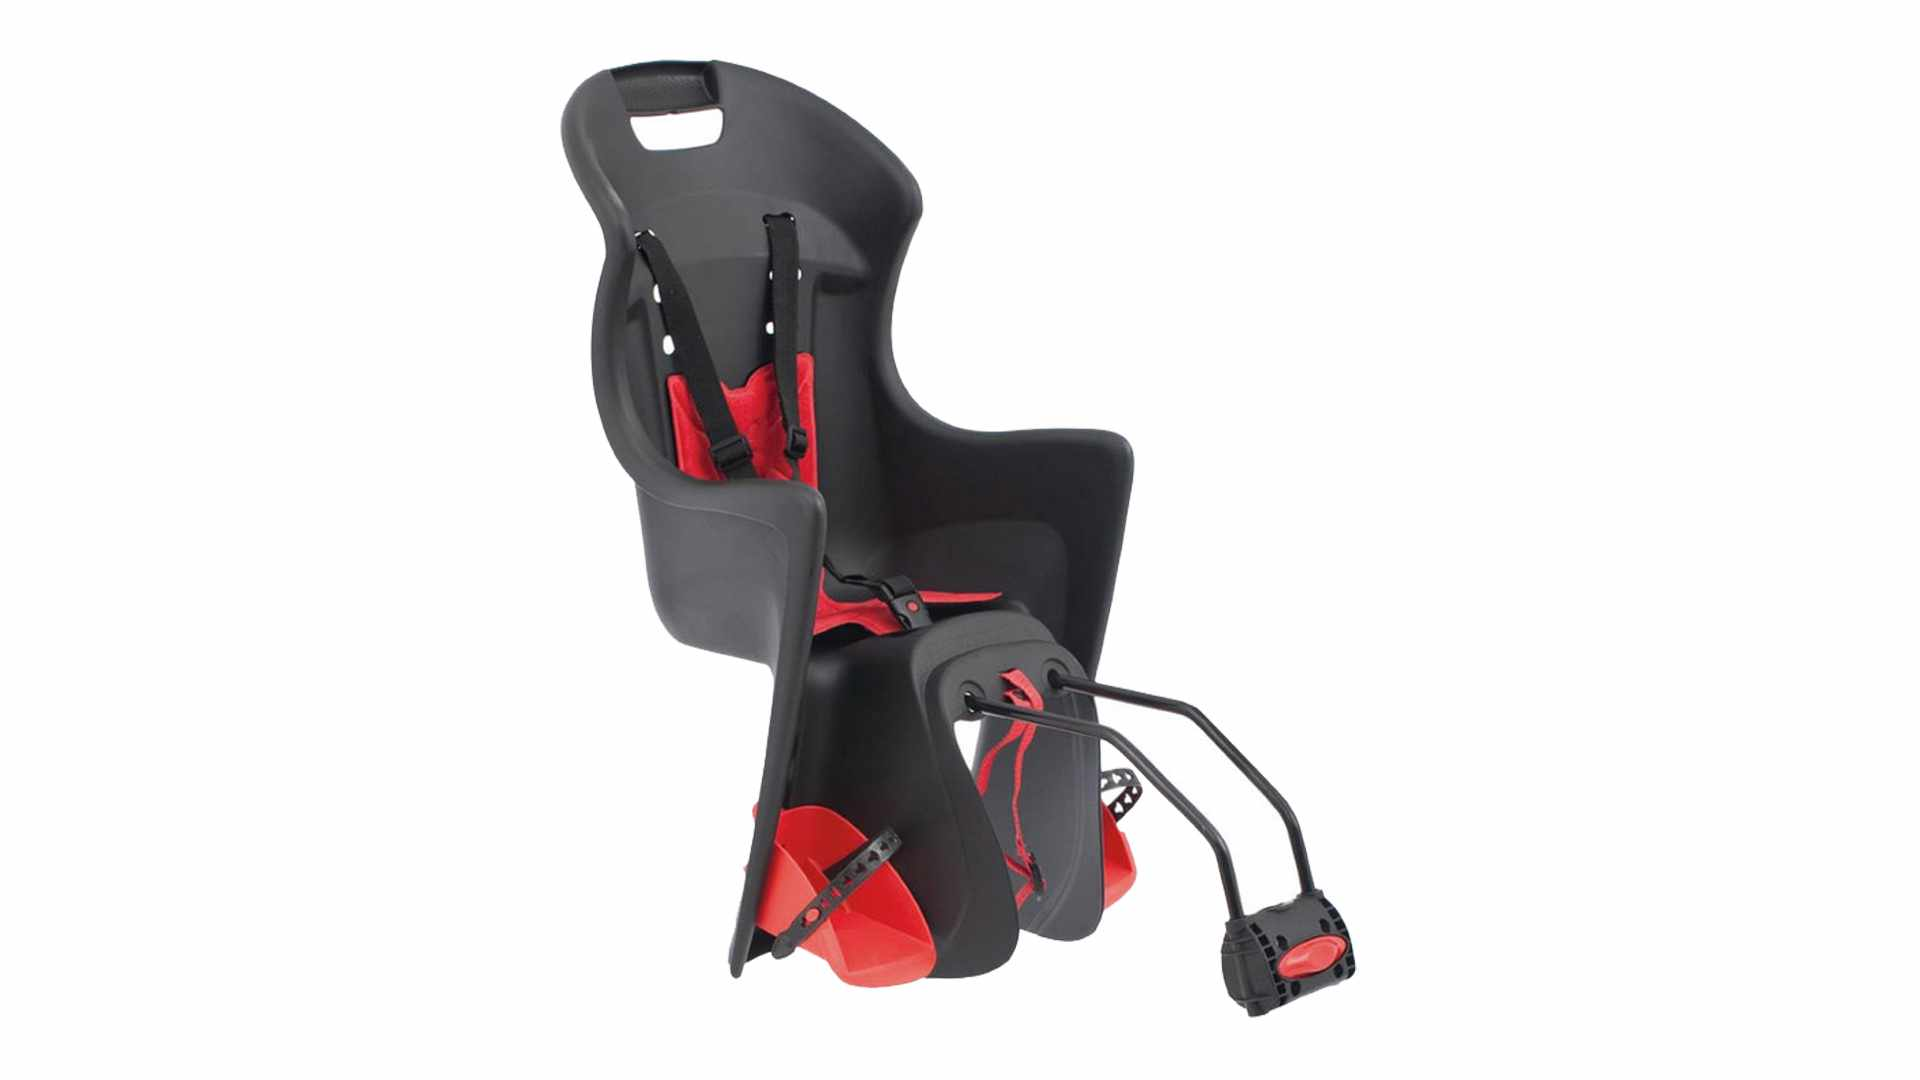 A red and black bike seat on a white background